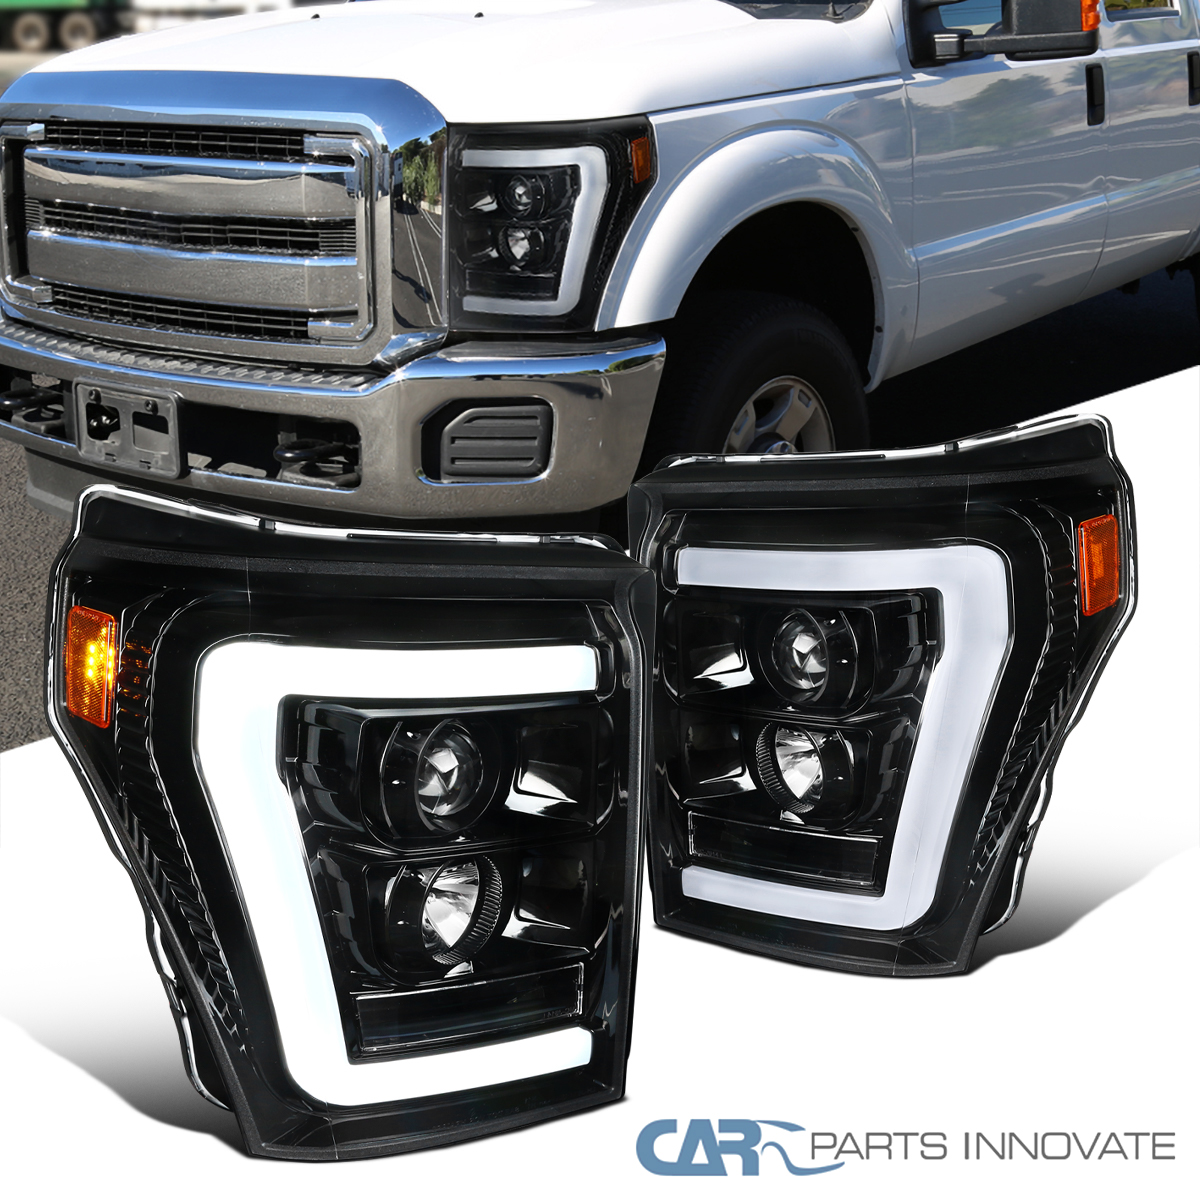 CAPA Fender Compatible with FORD F-250//F-350 SUPER DUTY 2011-2016 RH